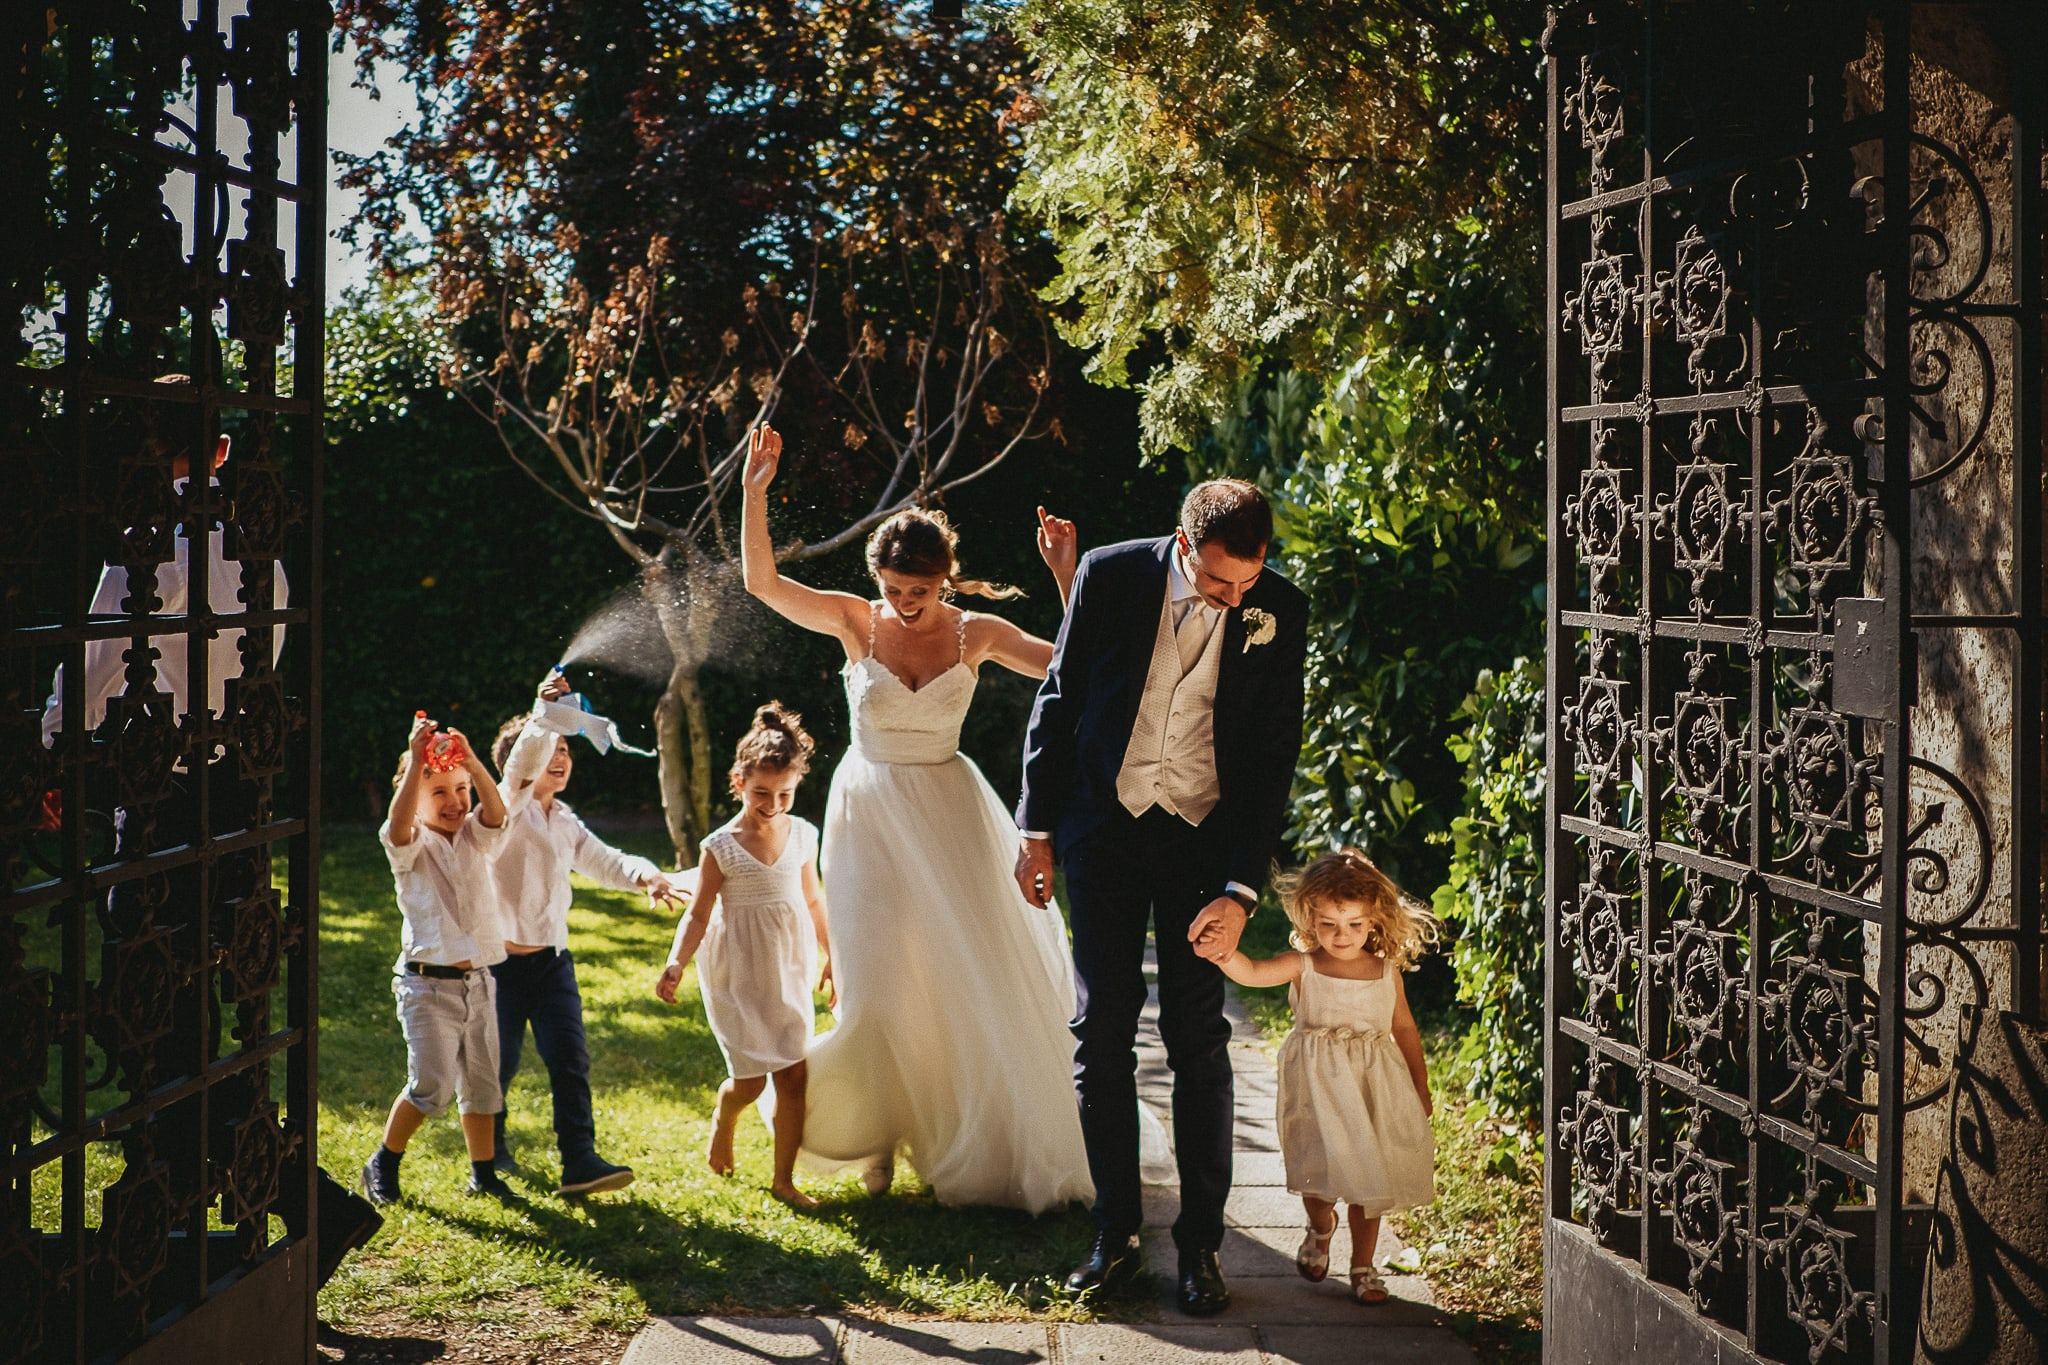 newlyweds with children and water guns in a photo of the best wedding photographer in rome